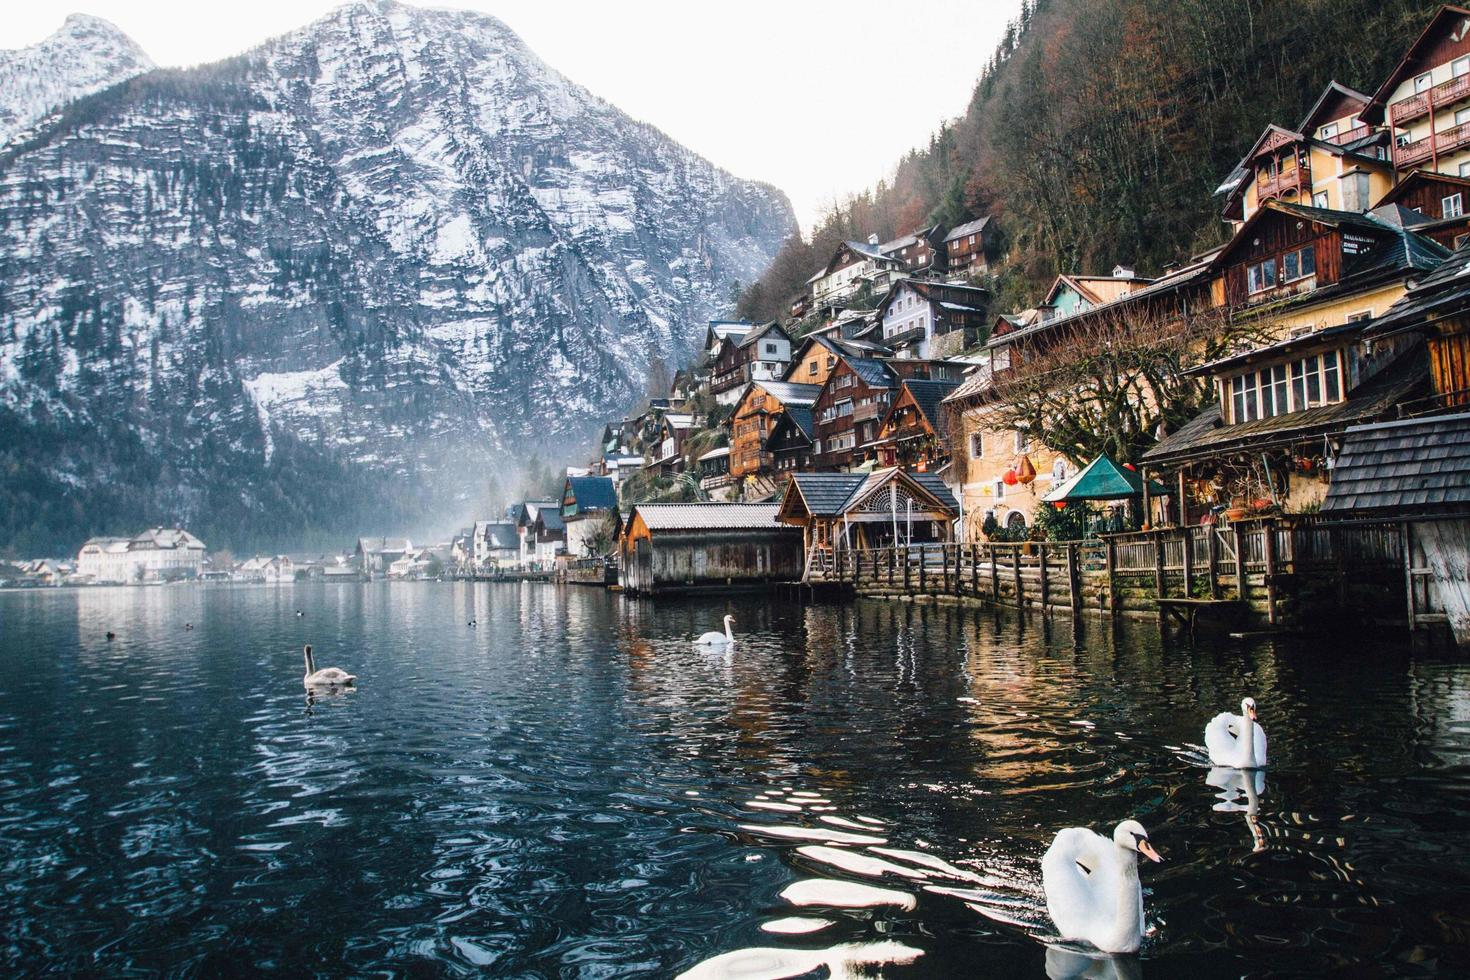 Swans and village near water photo